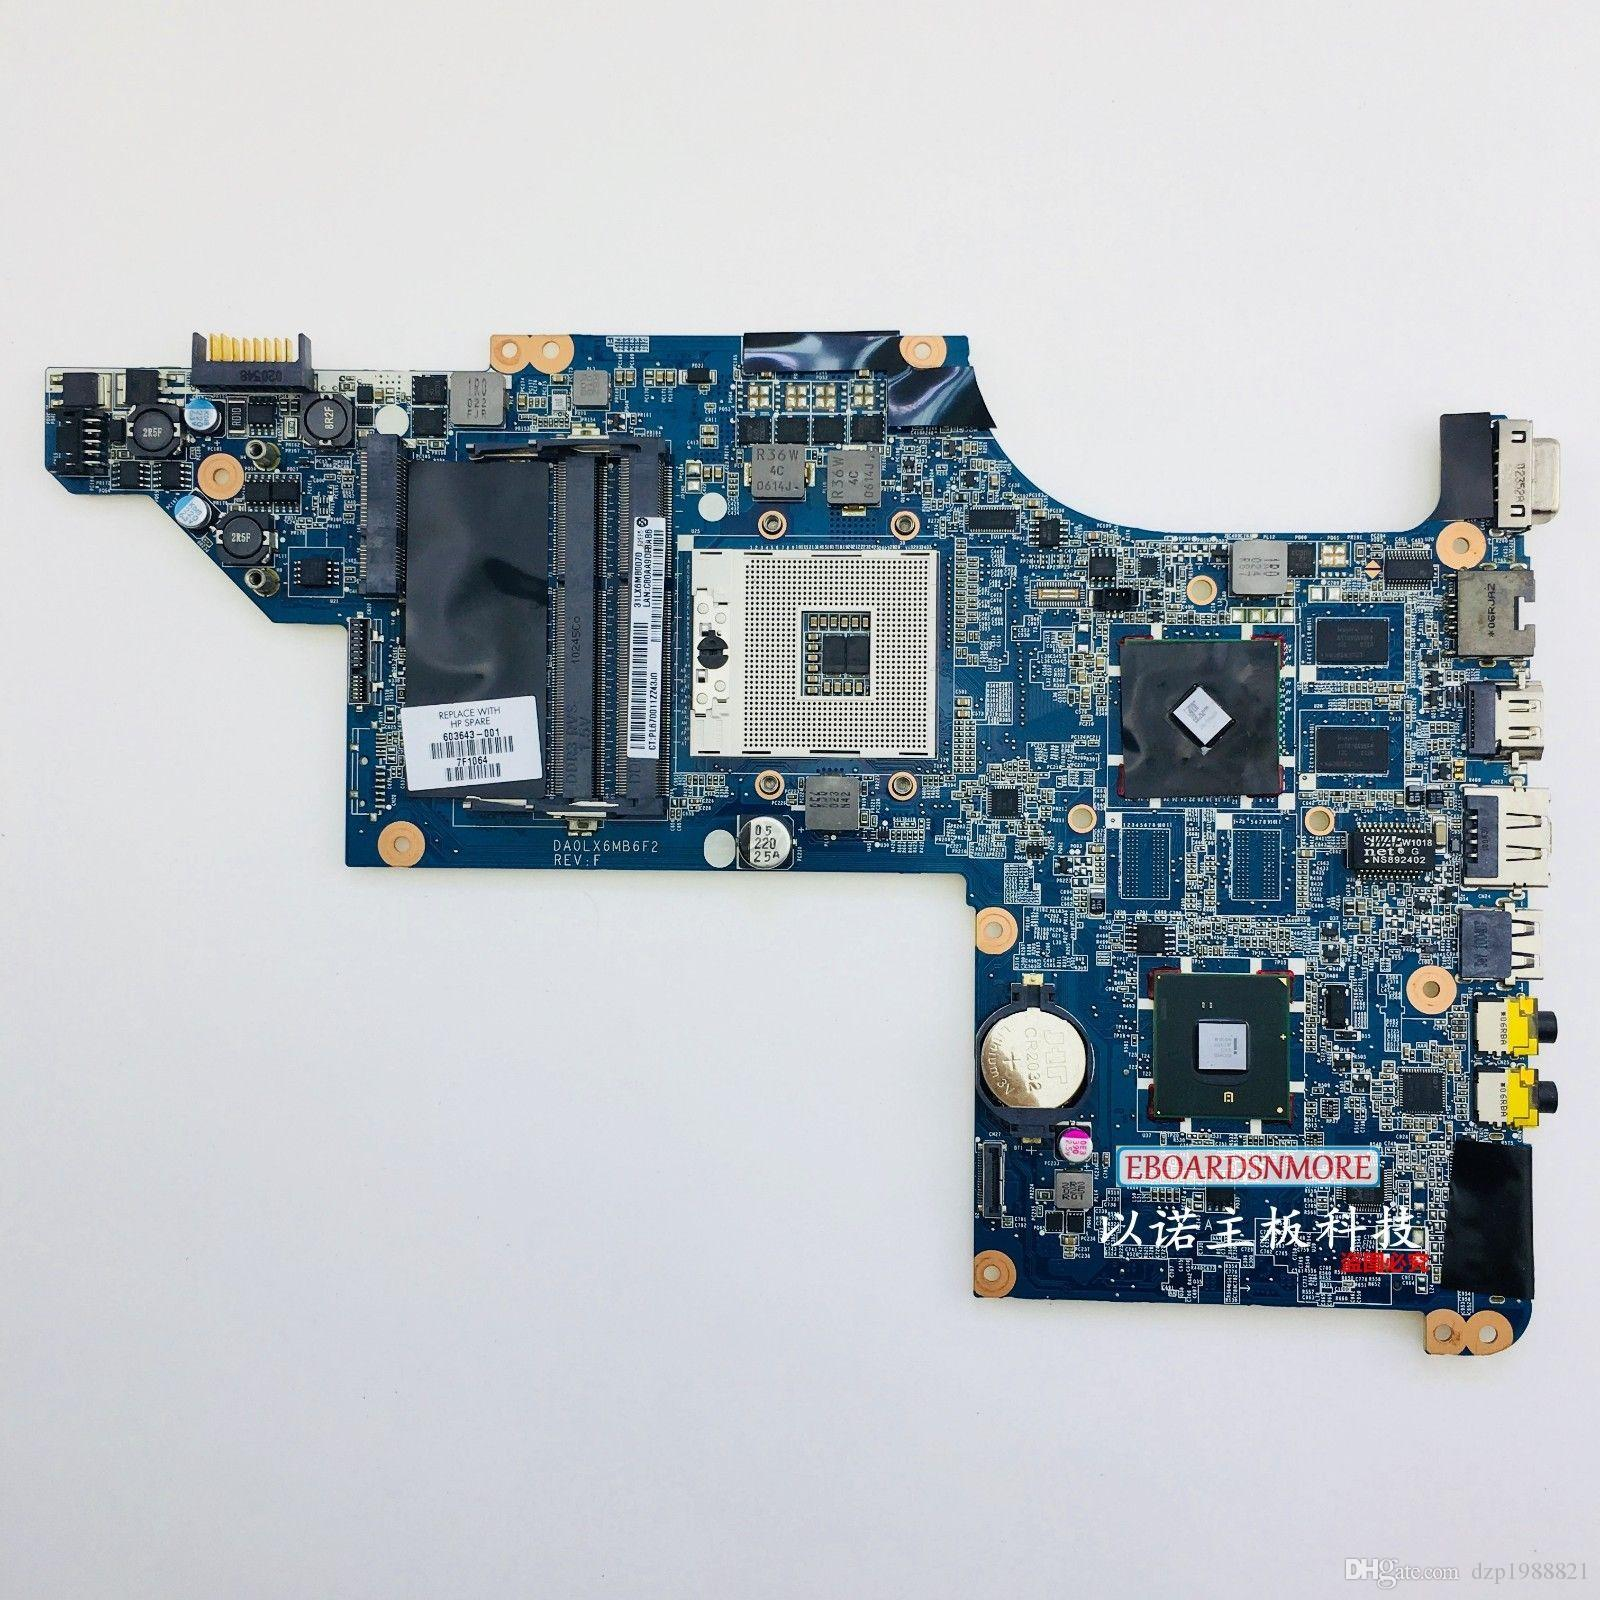 603643-001 for HP pavilion DV6 DV6T DV6-3000 motherboard with INTEL chipset 5470/512m